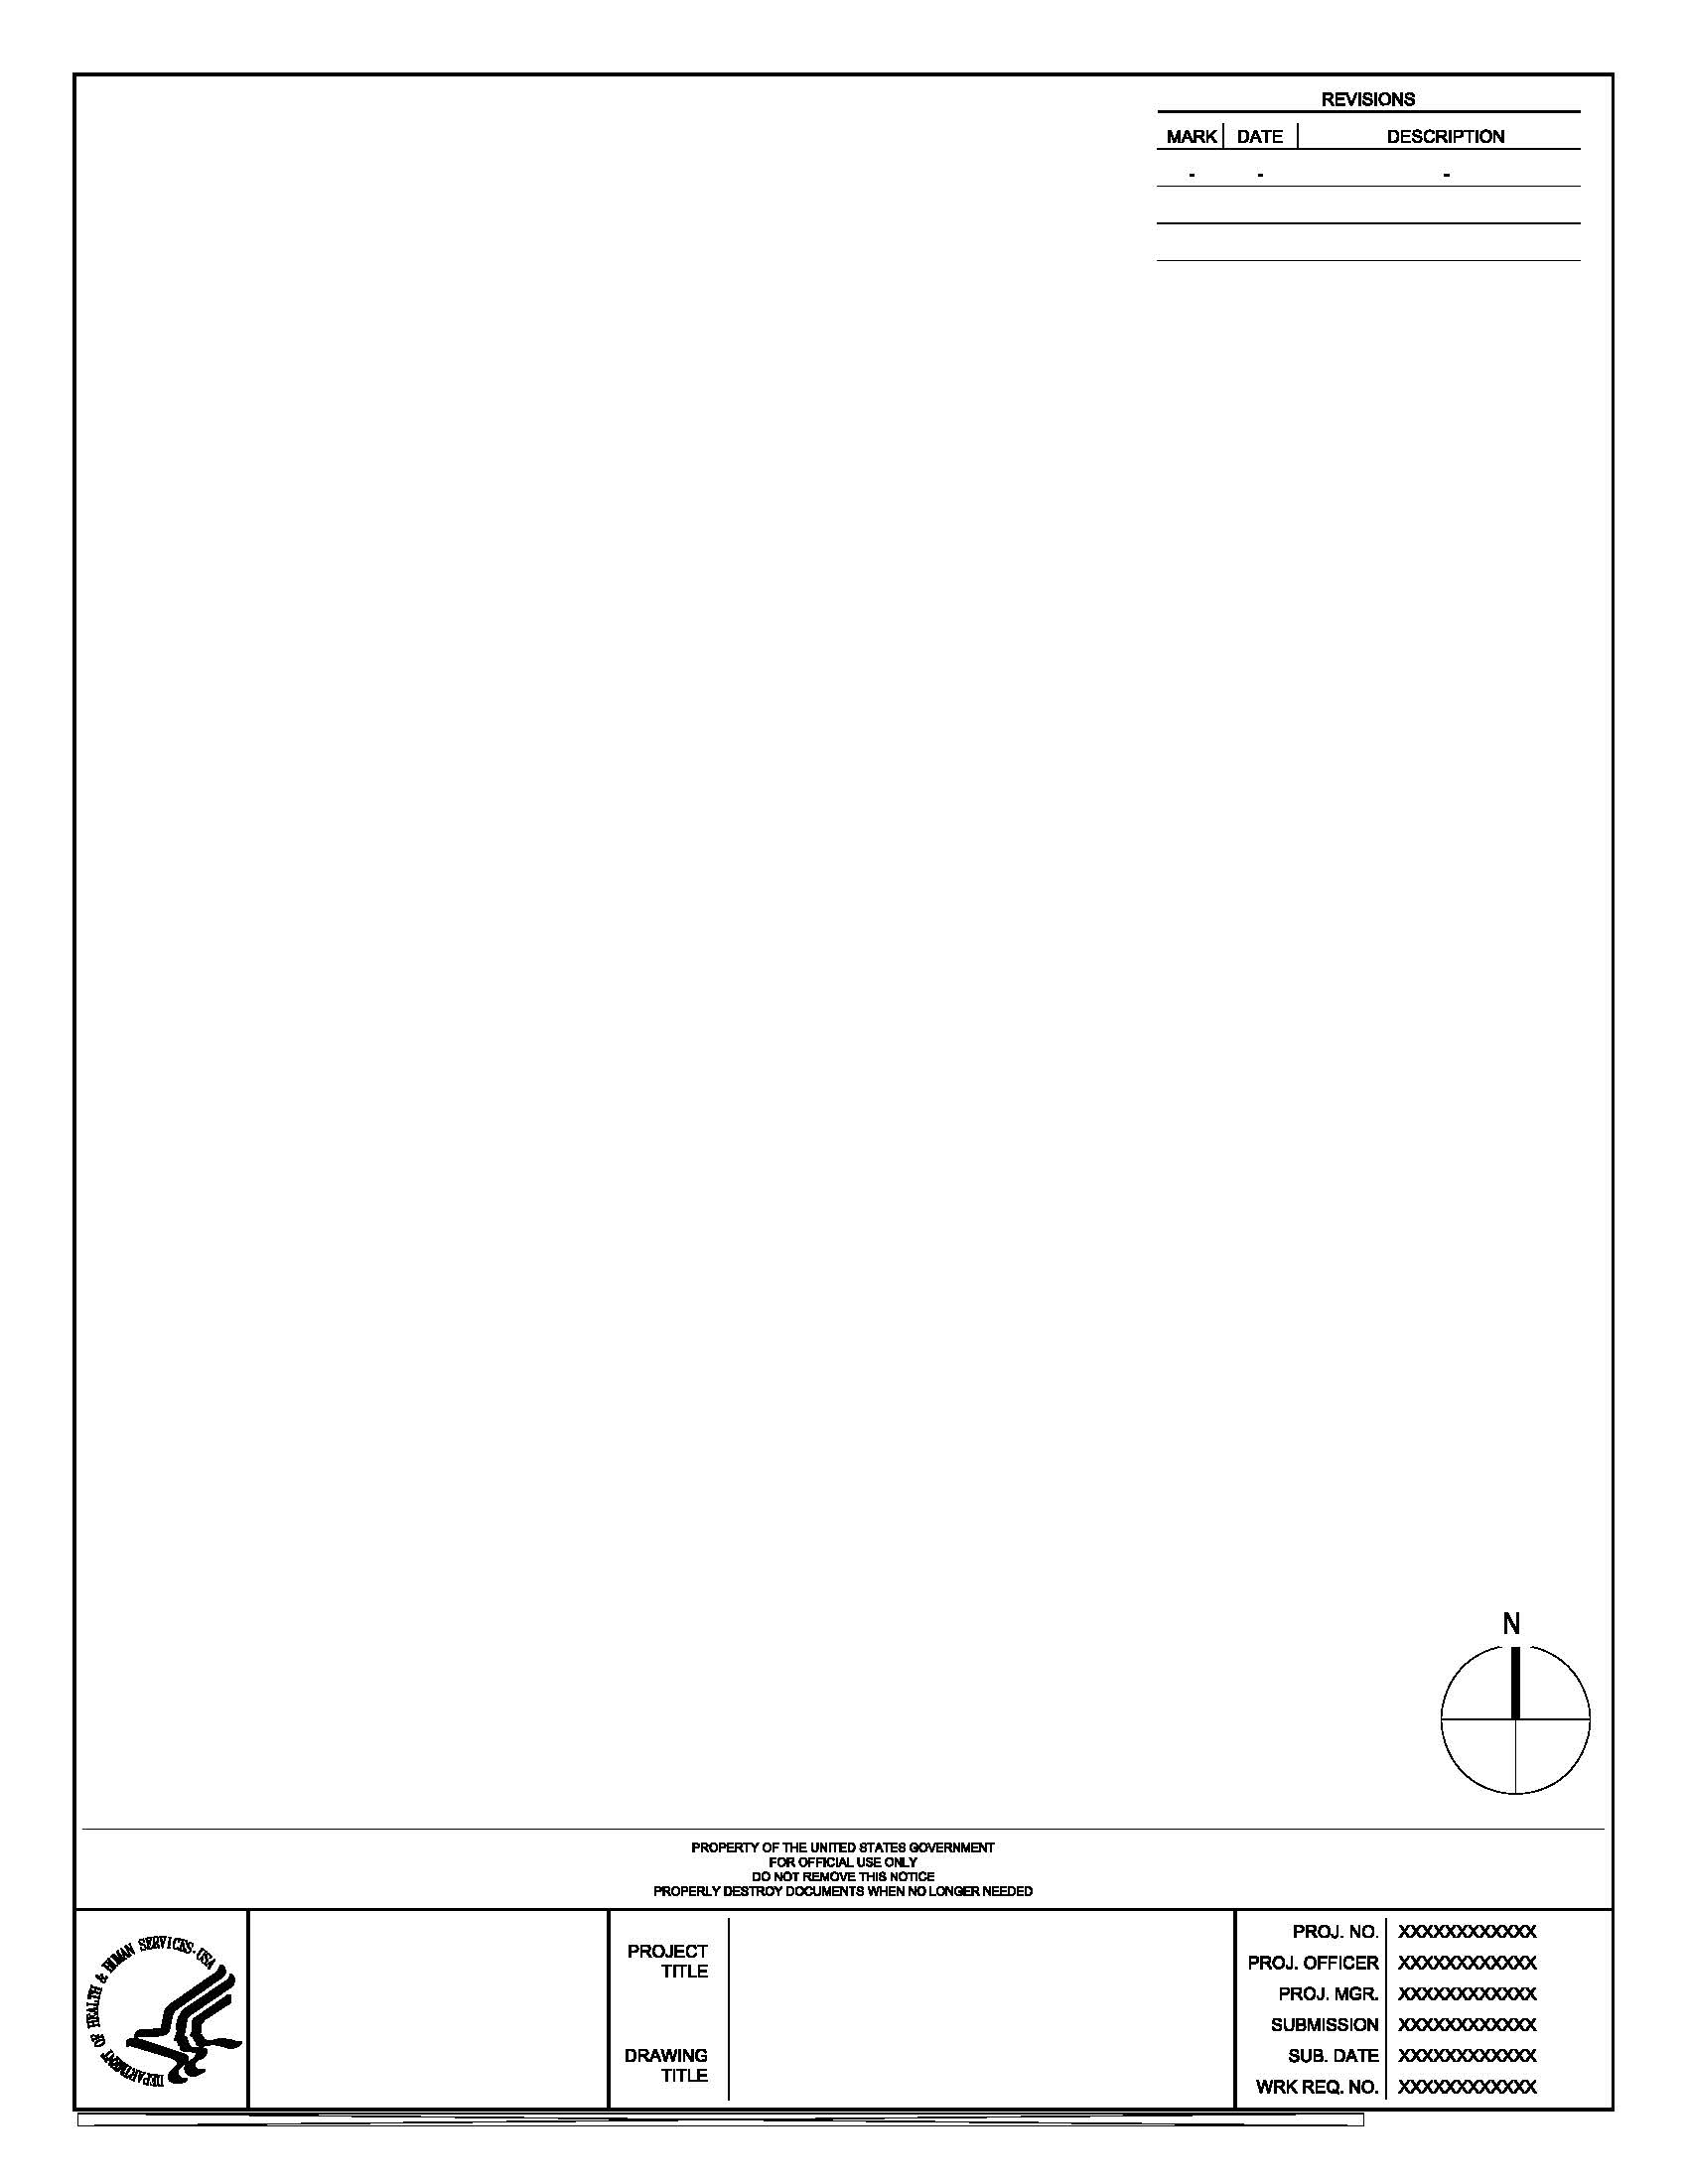 Turbocad drawing template image collections template for Turbocad drawing template